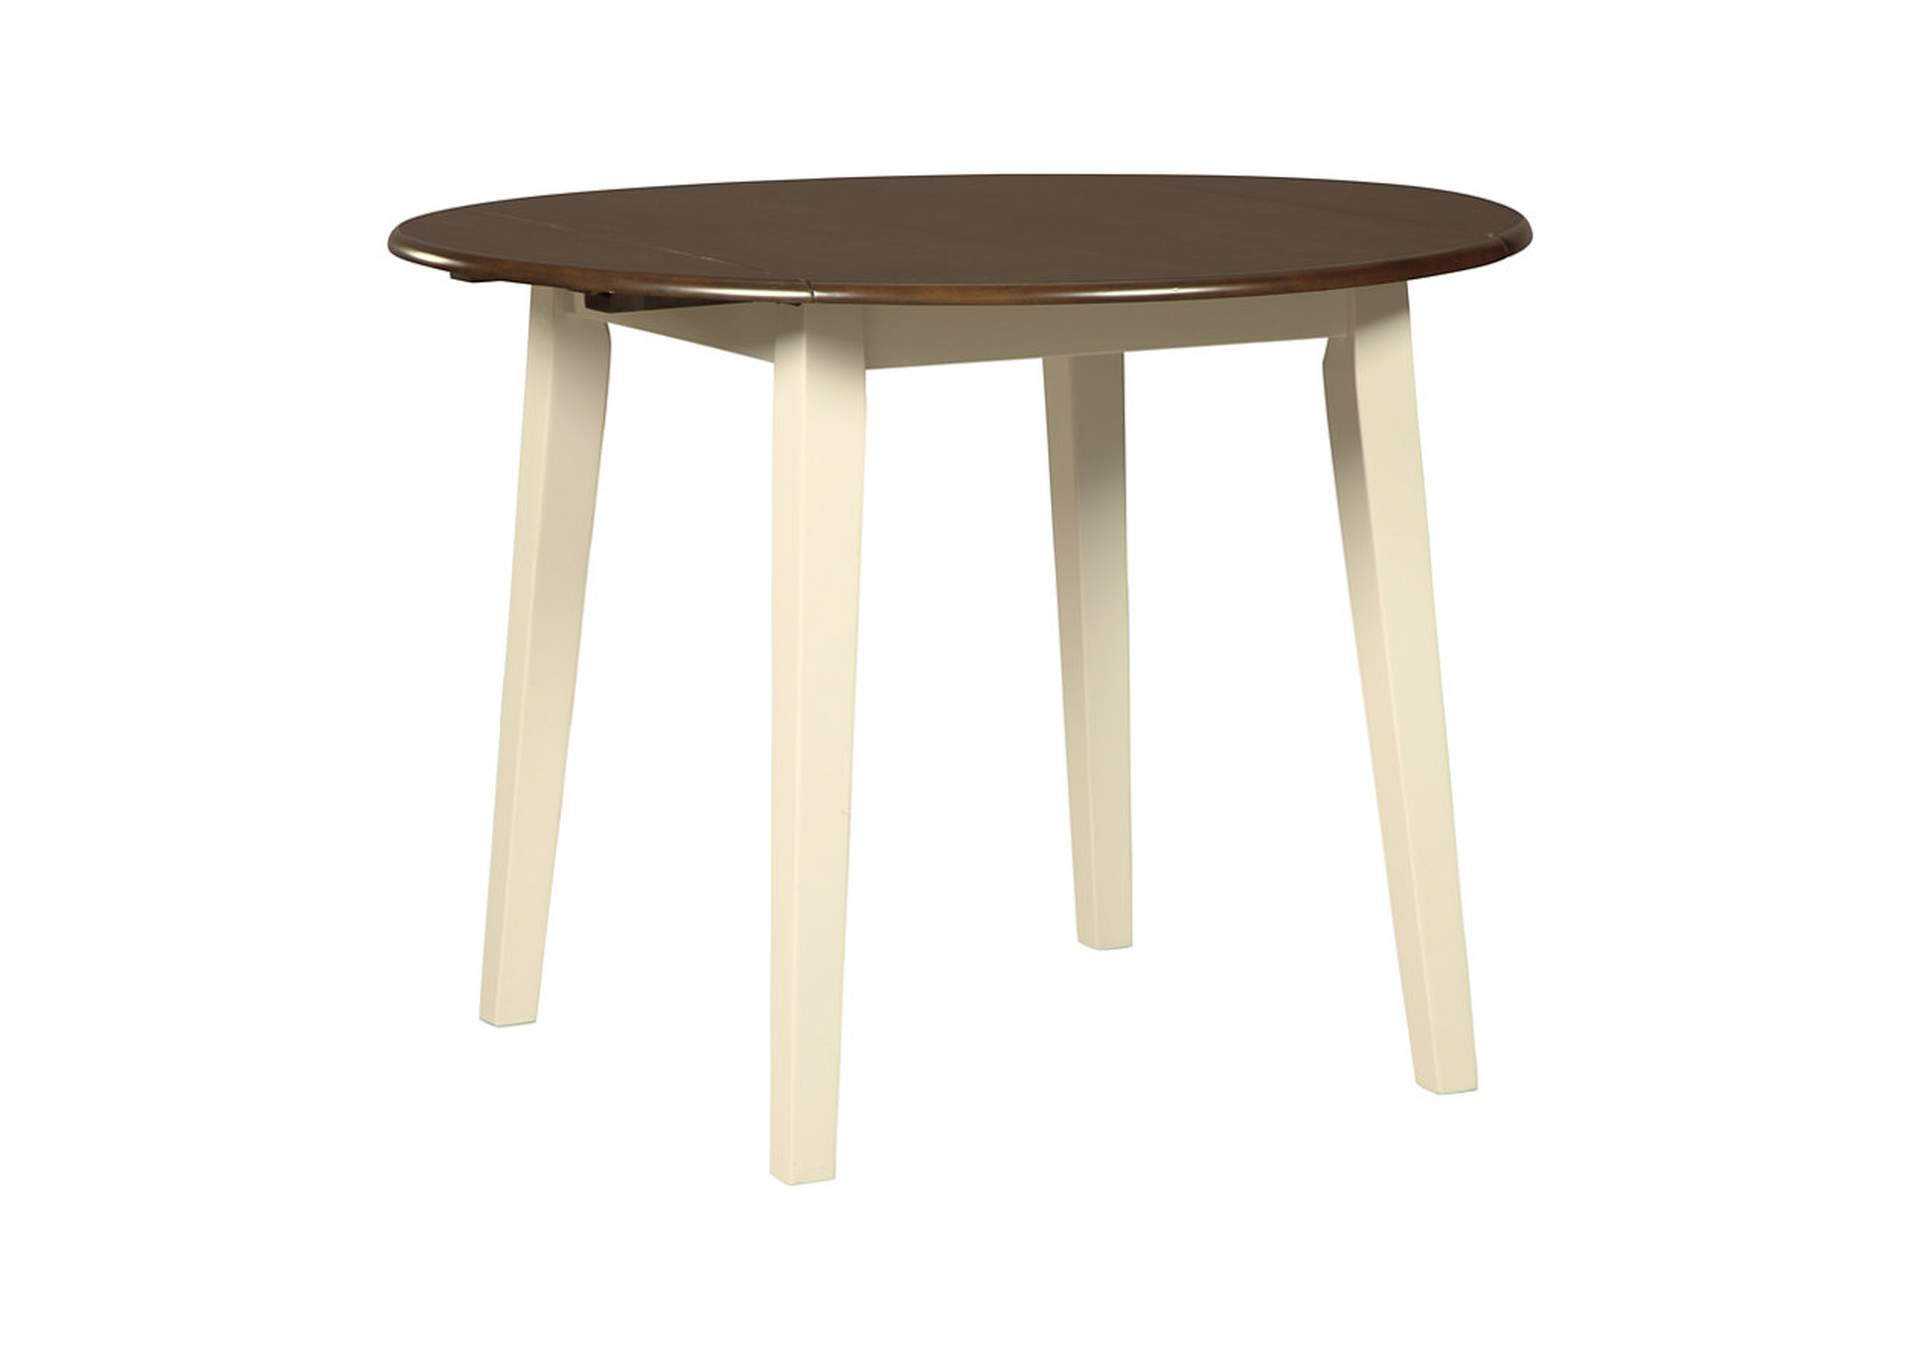 Woodanville White/Brown Round Dining Room Drop Leaf Table,Signature Design By Ashley